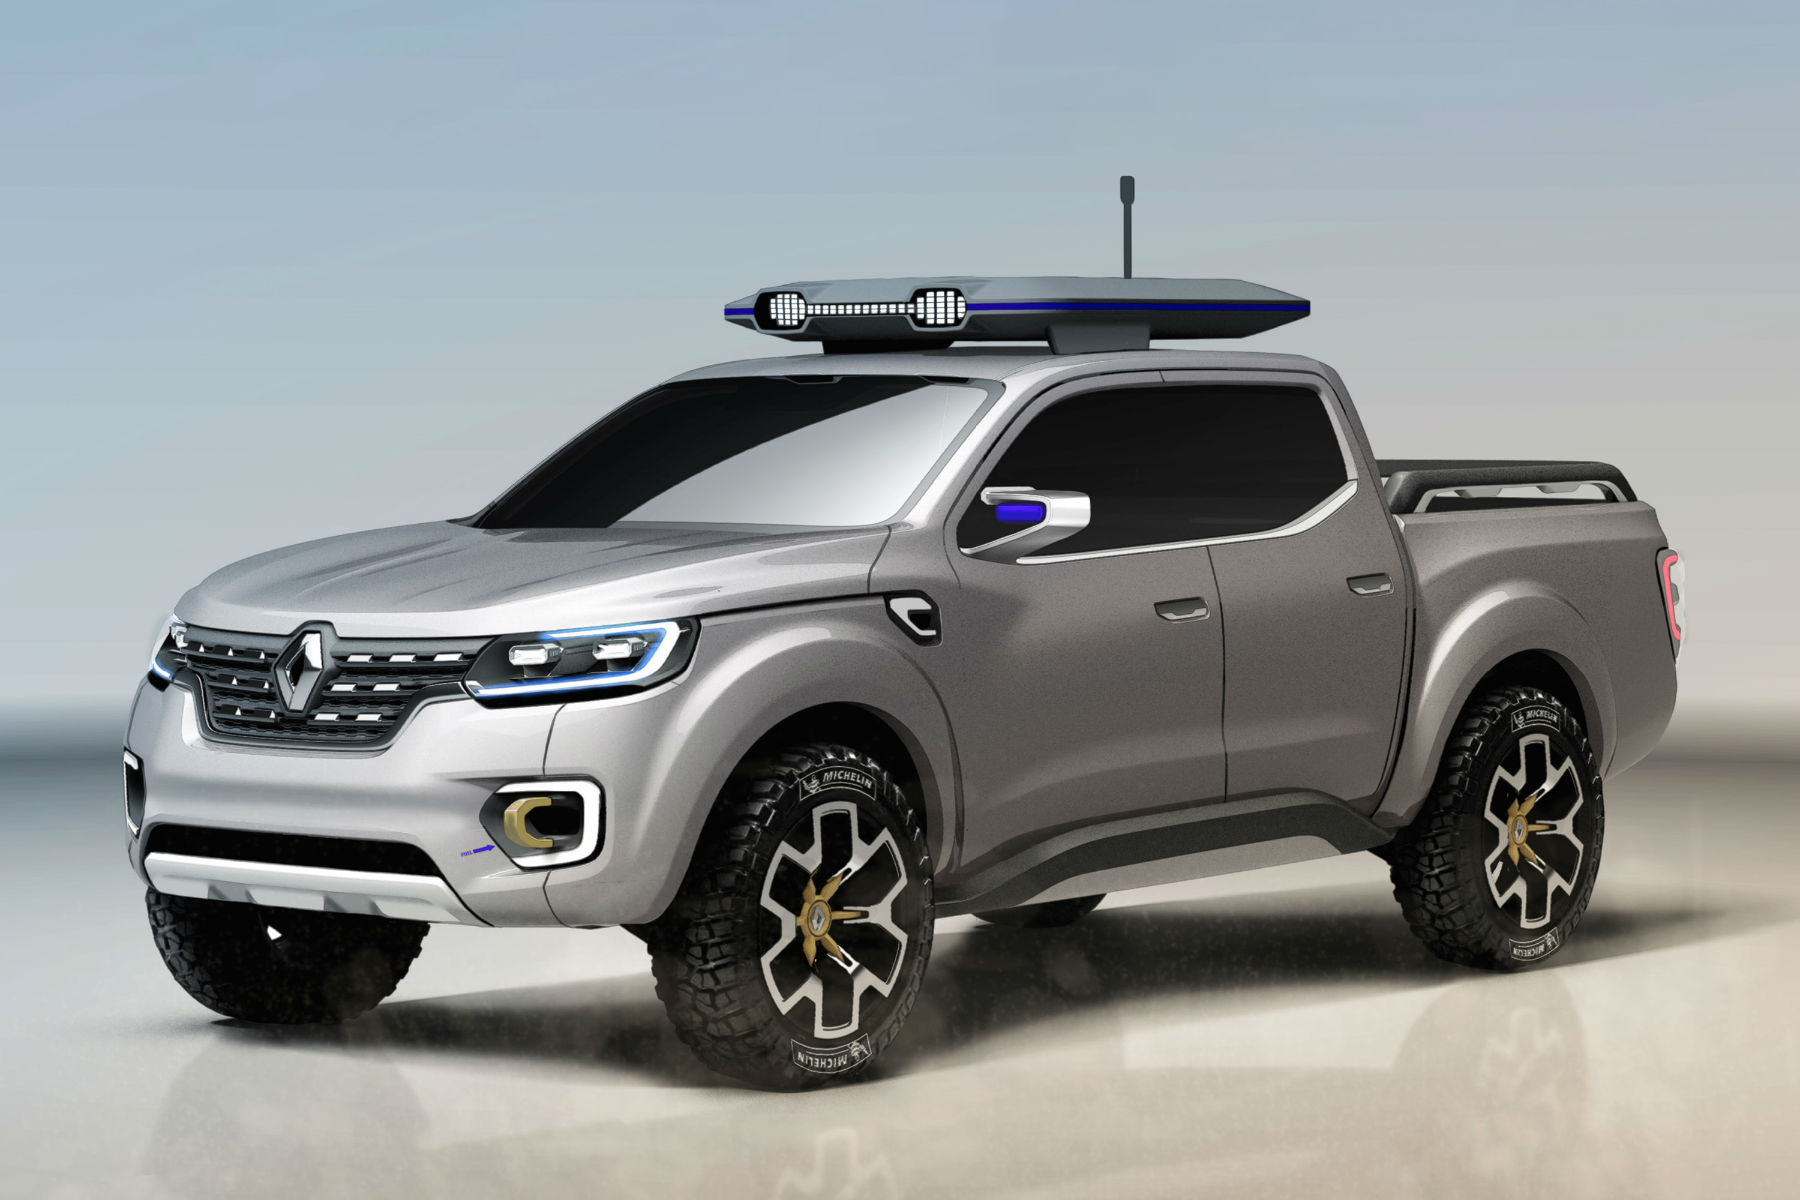 Renault Alaskan concept previews new pick-up truck